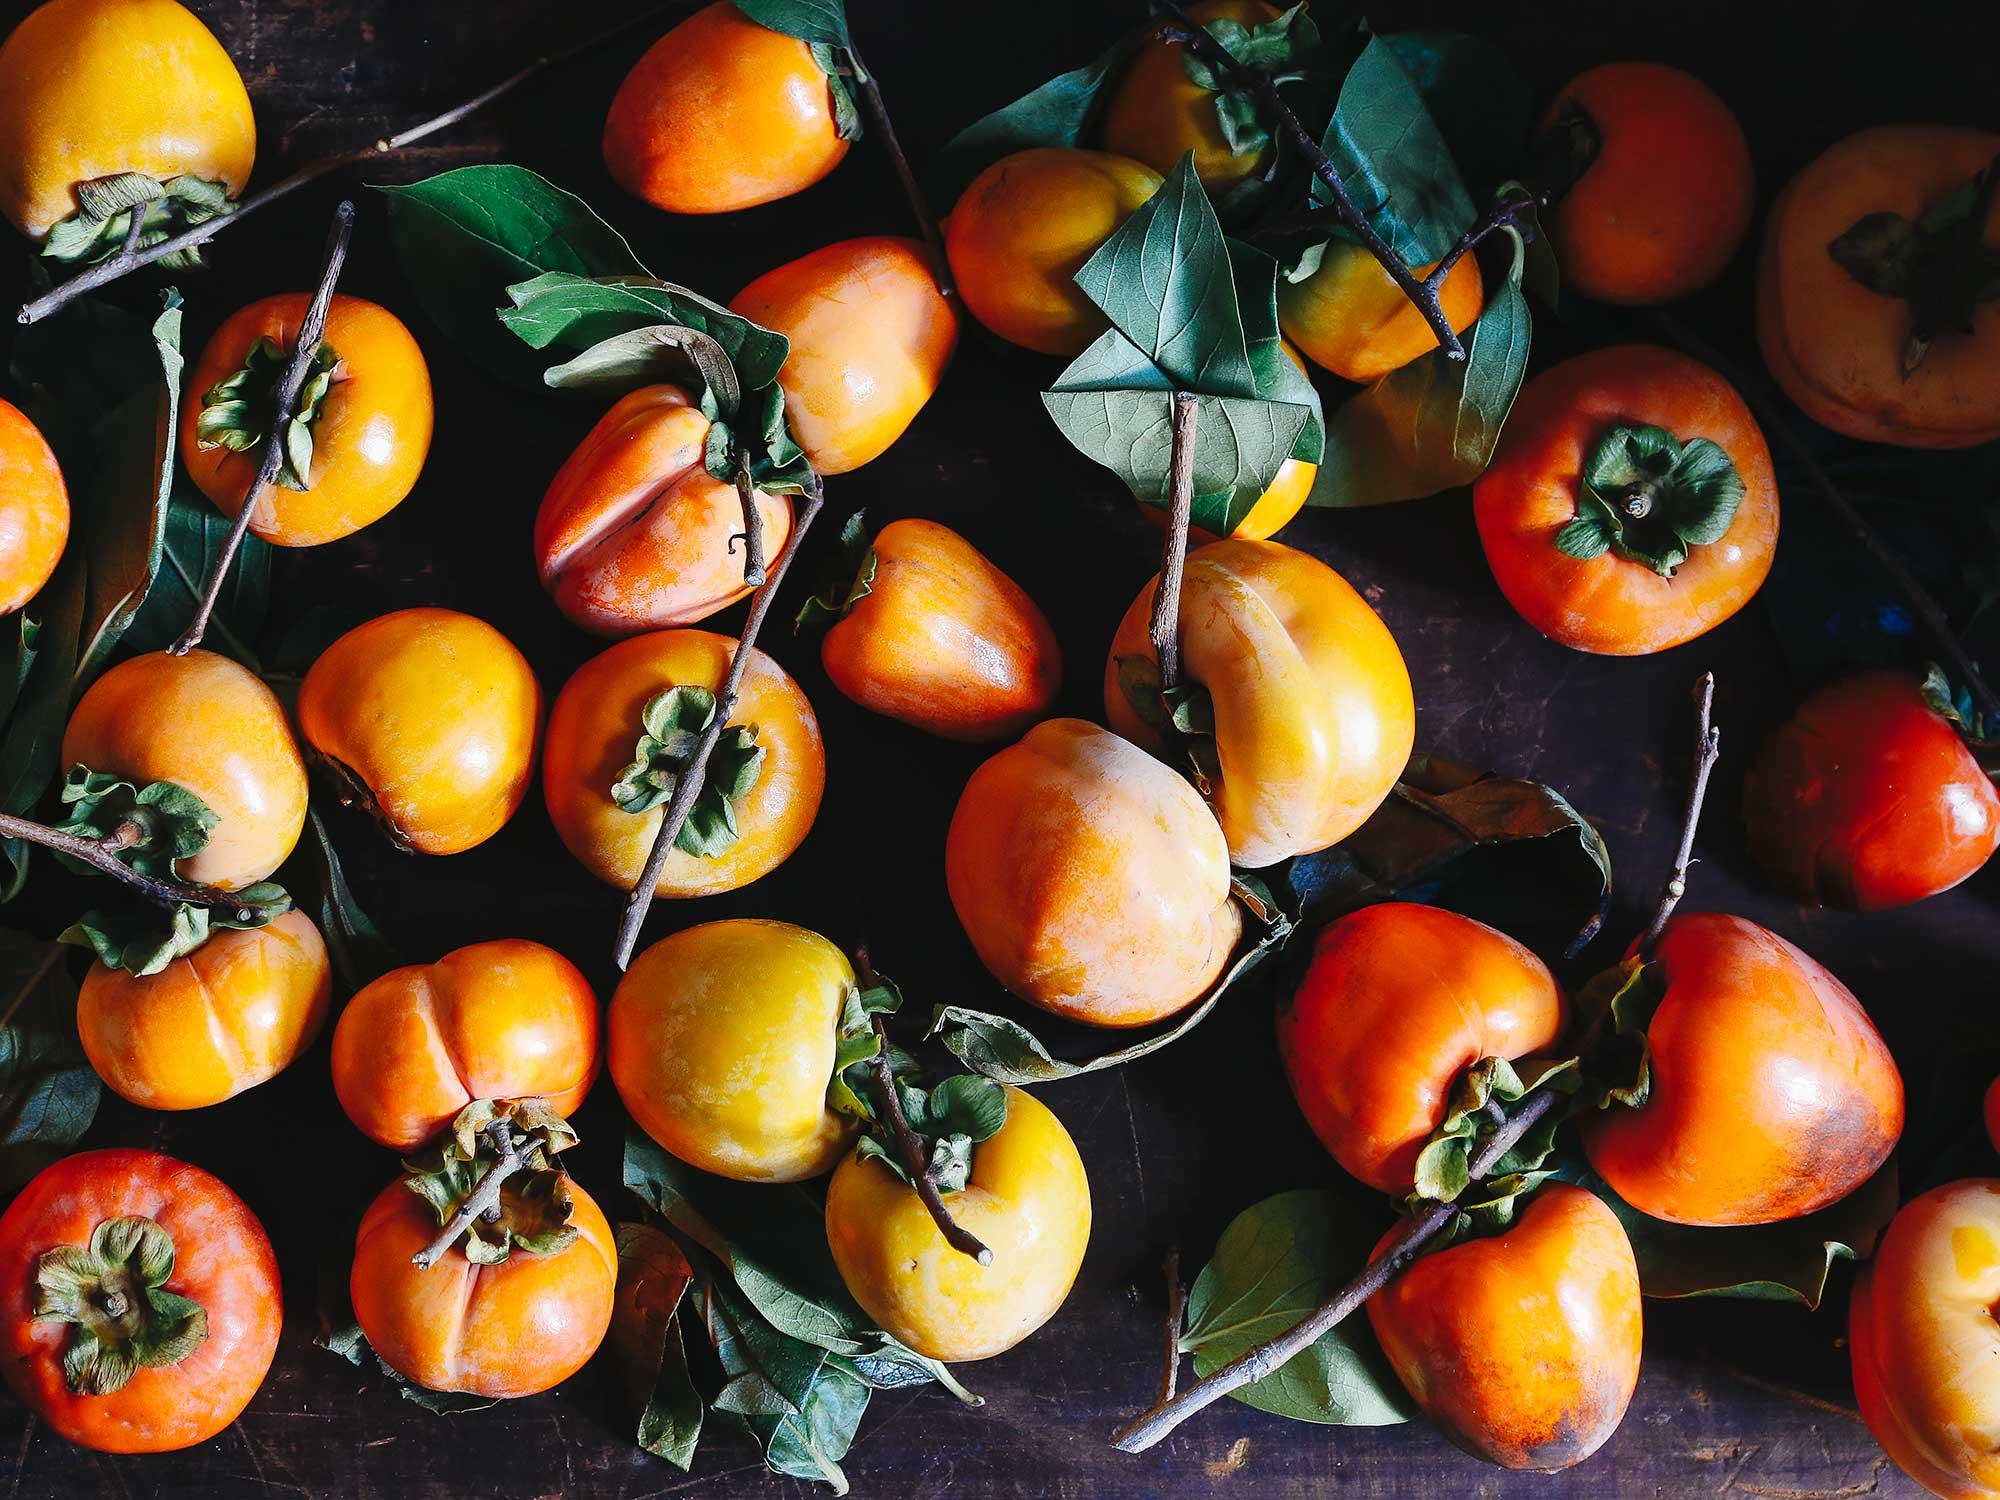 Bounty of persimmons